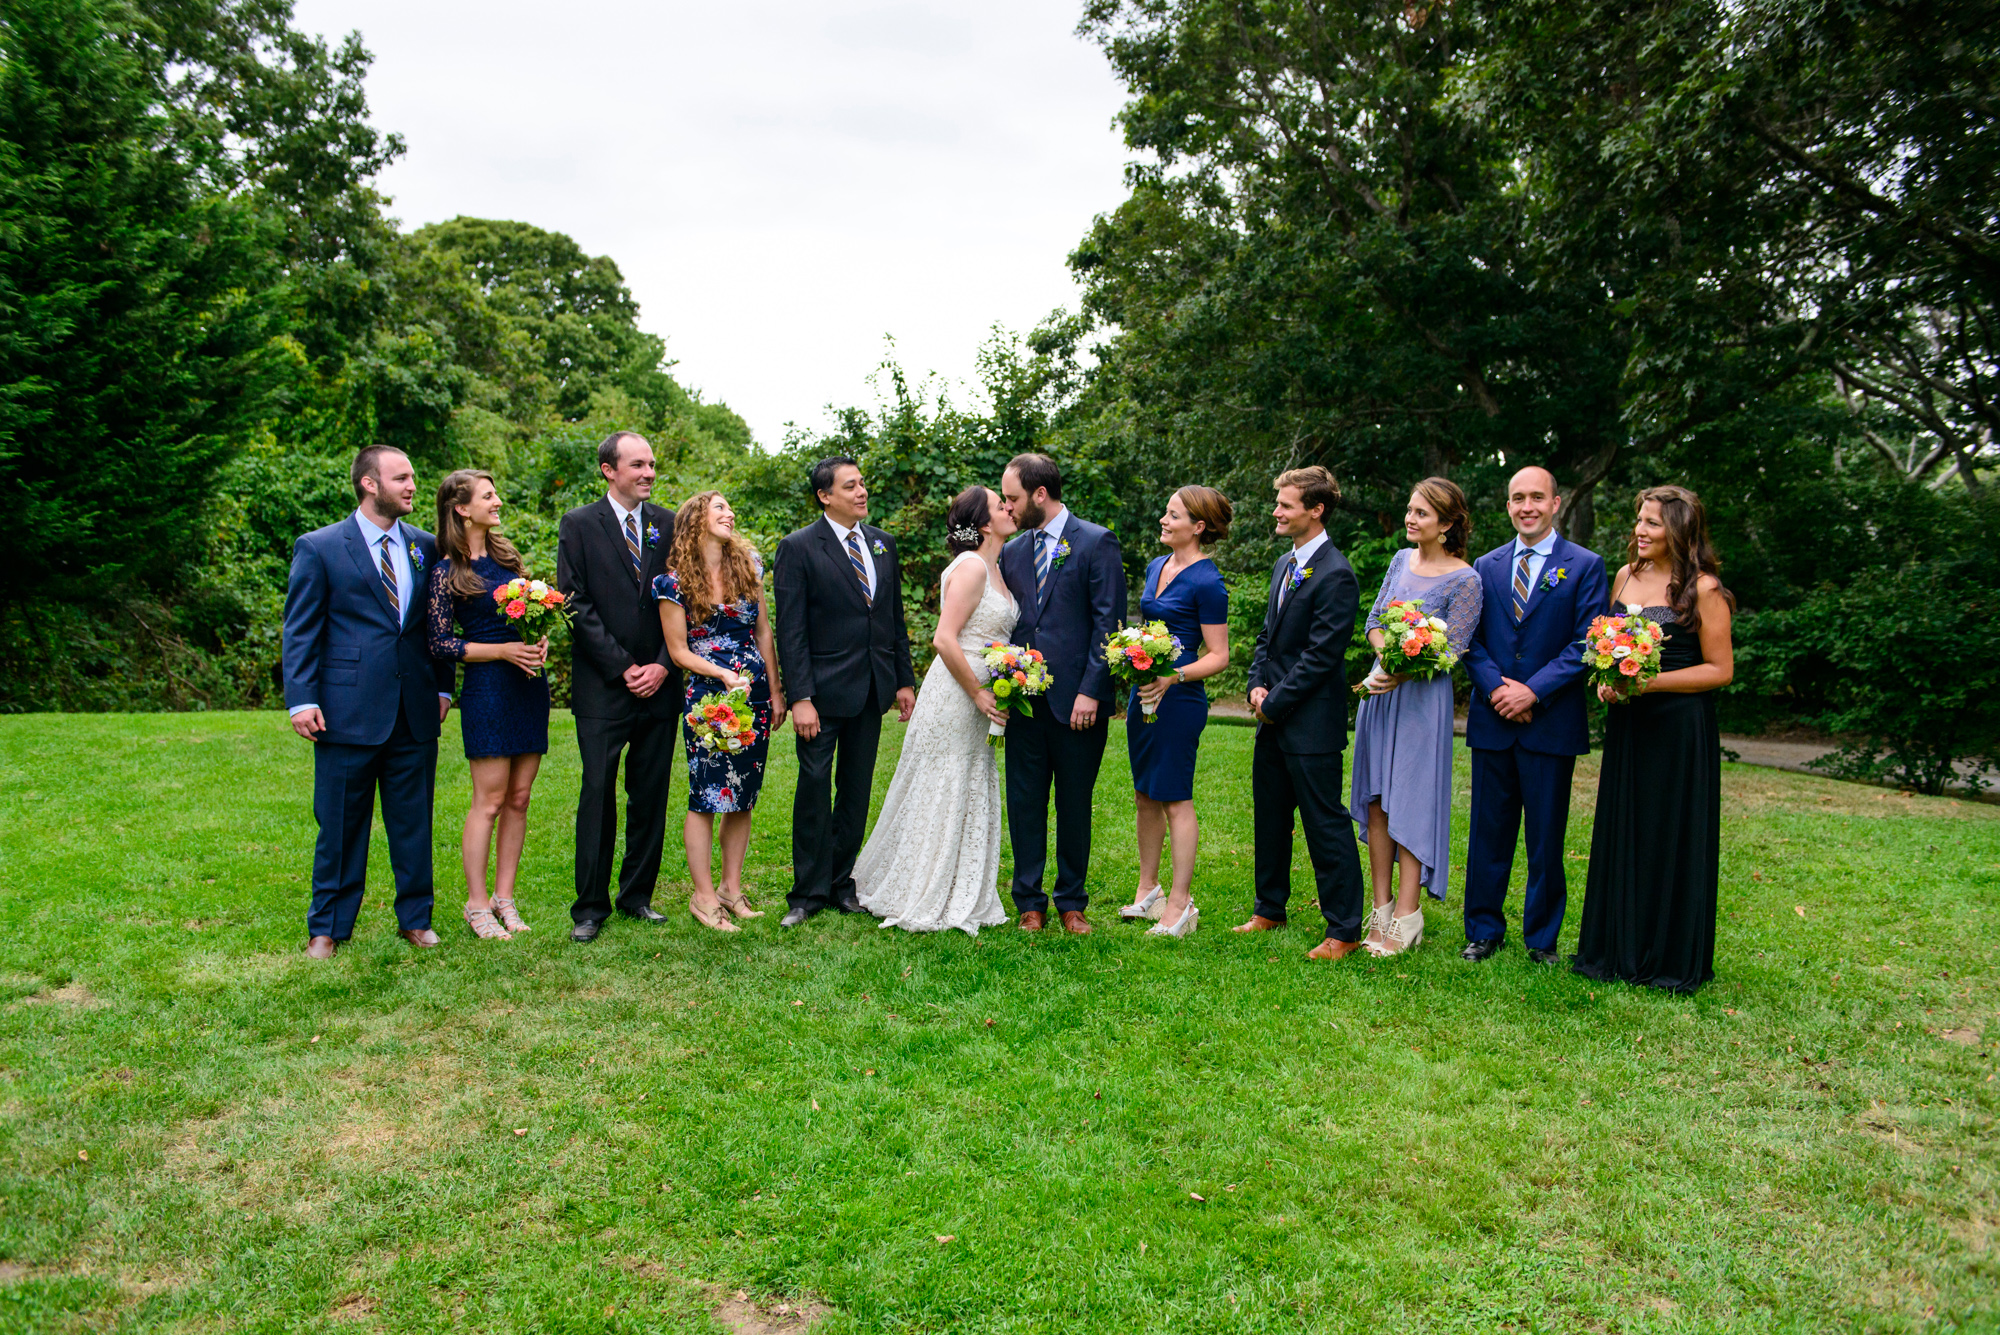 Formal wedding photos at The Beach Plum Inn & Restaurant photo by David Welch Photography